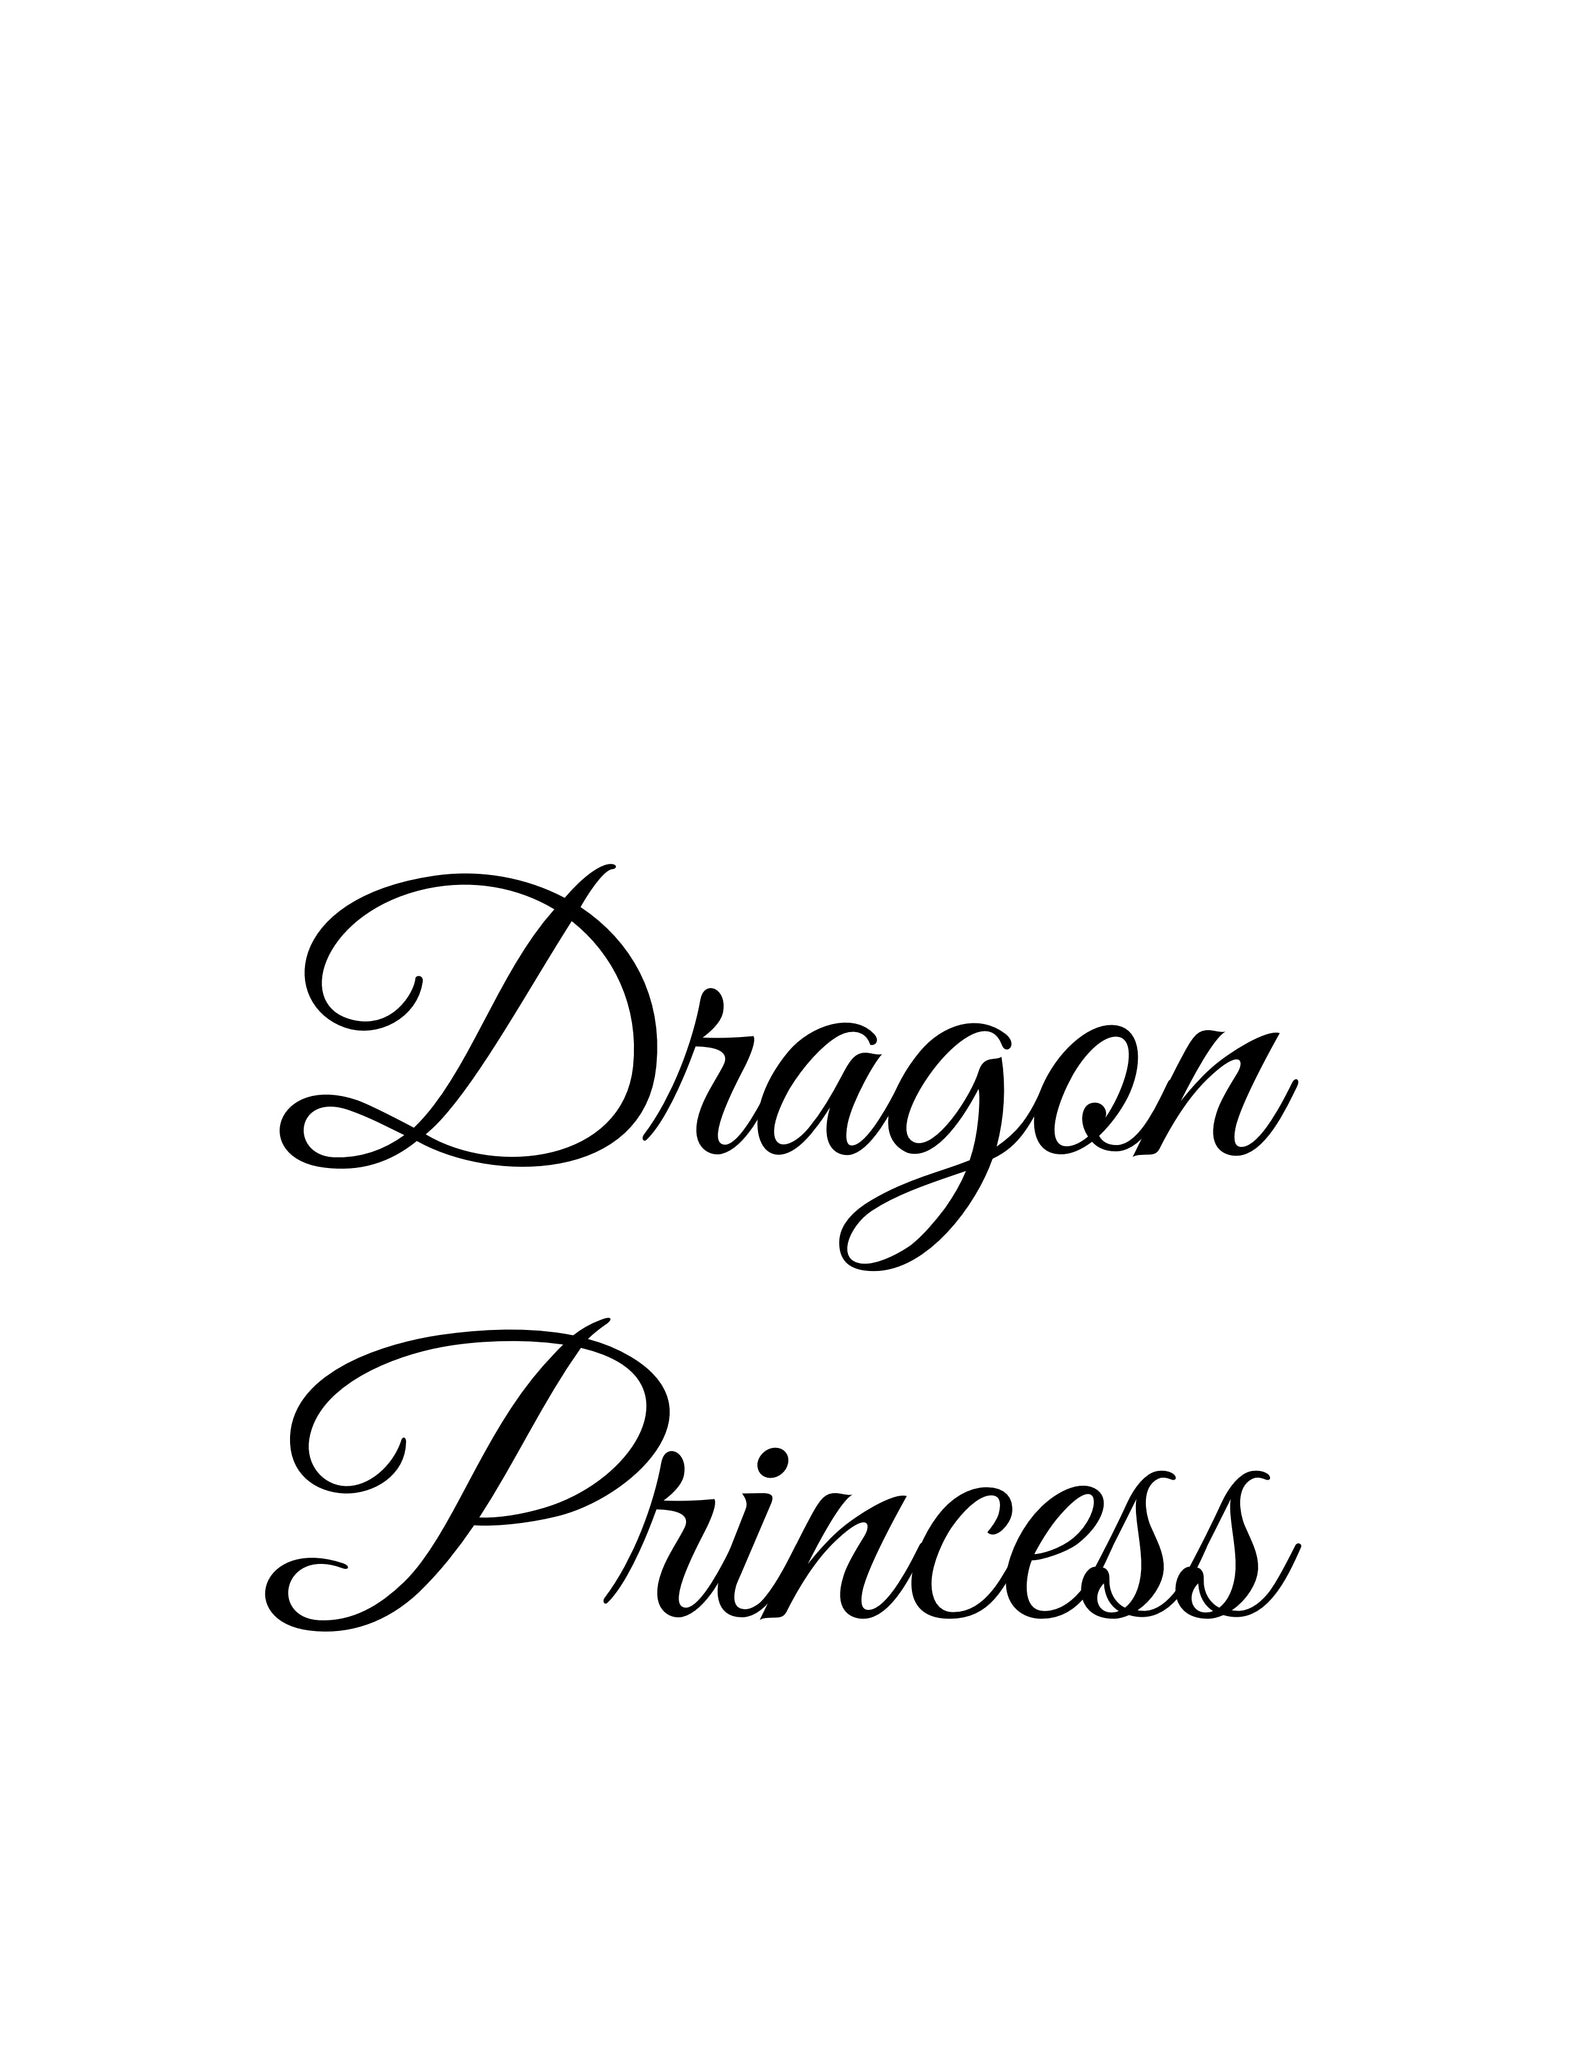 Dragon Princess (original, system approach)